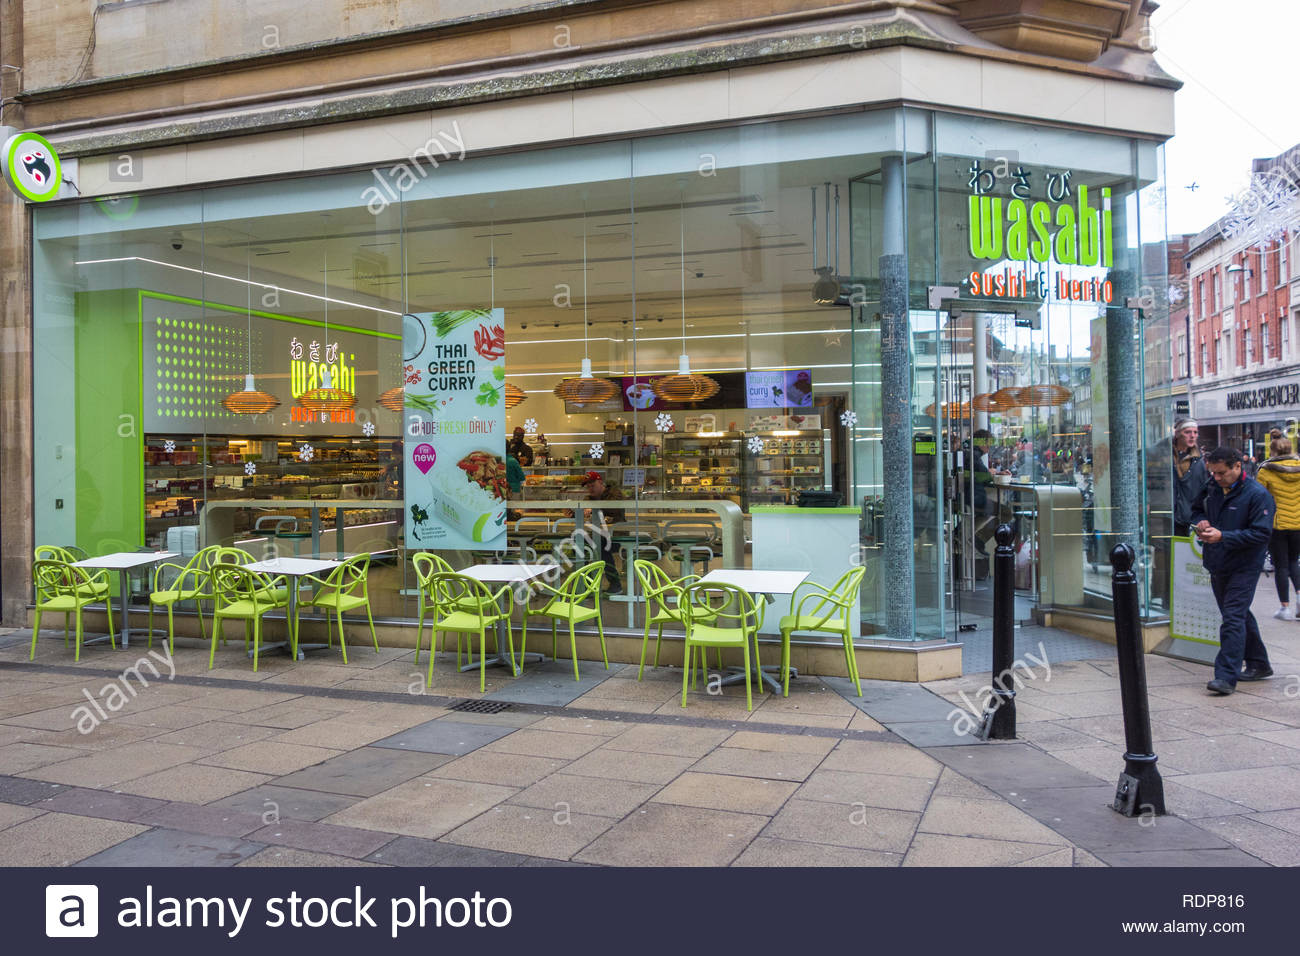 Wasabi, a sushi and bento food restaurant in Cambridge, Cambs, Cambridgeshire, England, UK. One of a few branches located outside London. - Stock Image